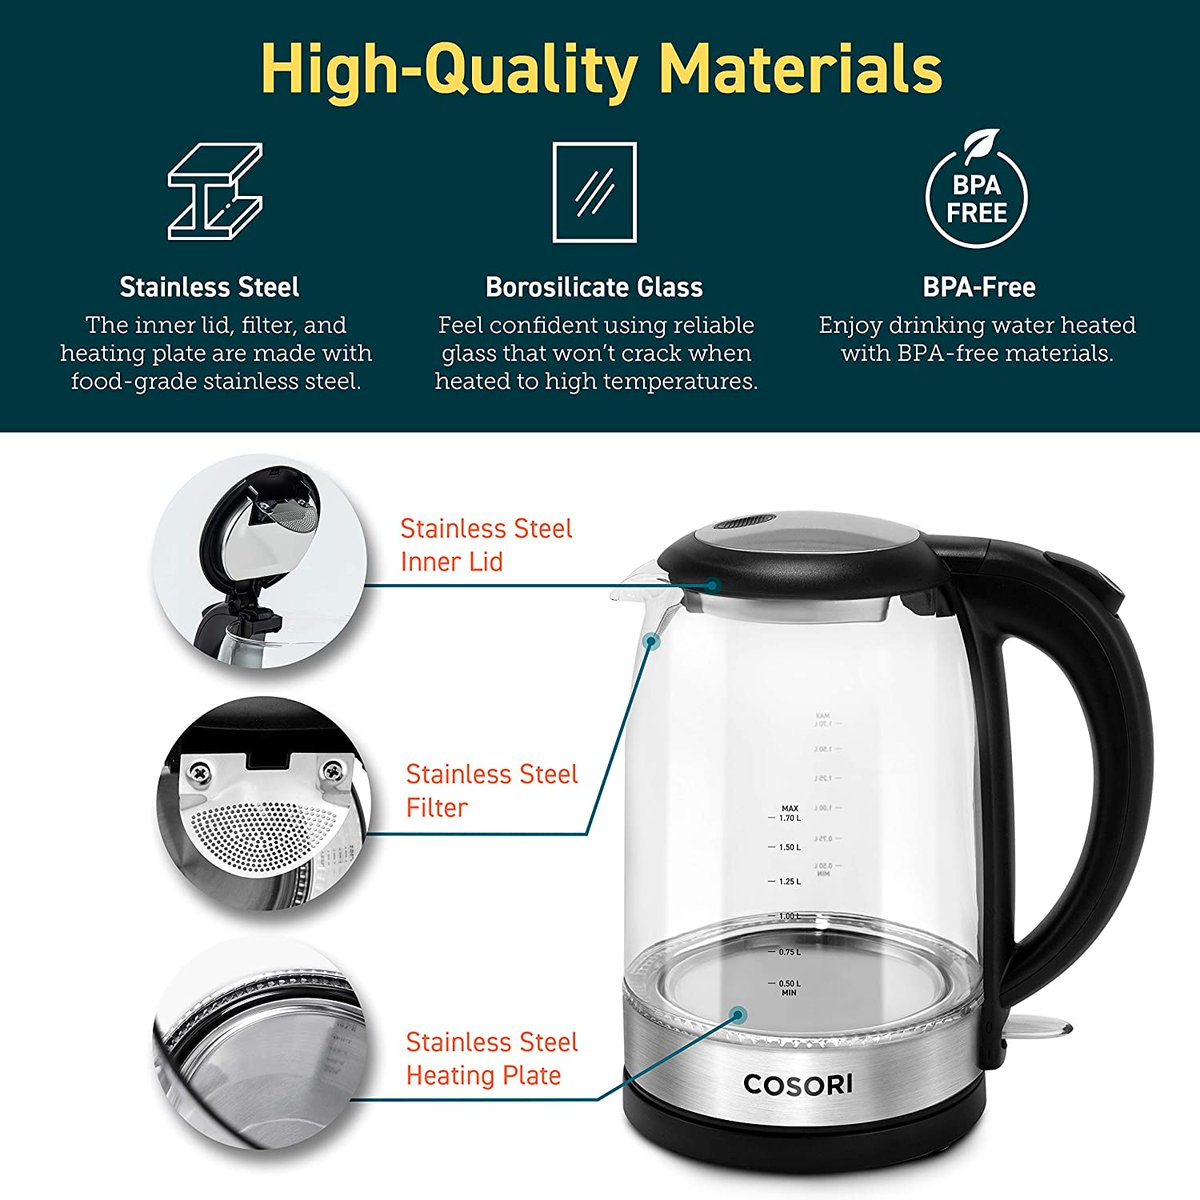 COSORI Electric Kettle with Upgraded Stainless Steel Filter and Inner Lid   Save 10%